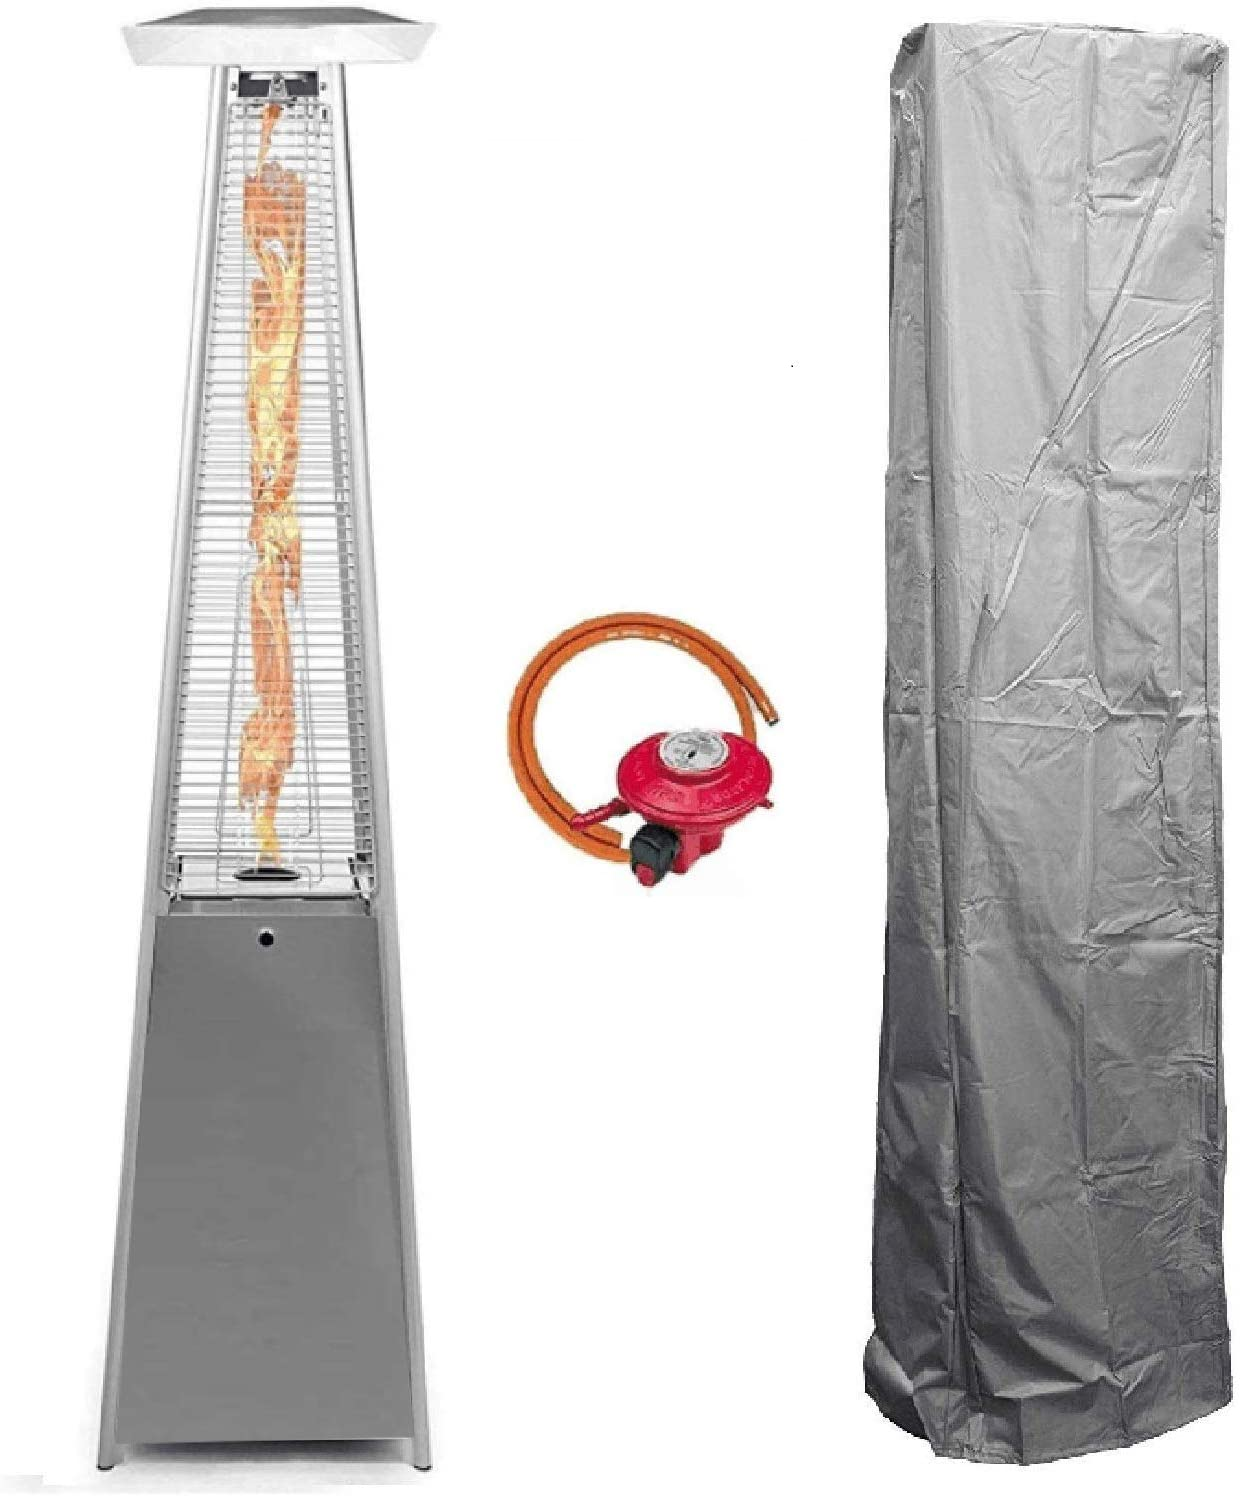 BU-KO Outdoor Patio Gas Heater LPG Warm Heating Fire & Water Proof Cover Included